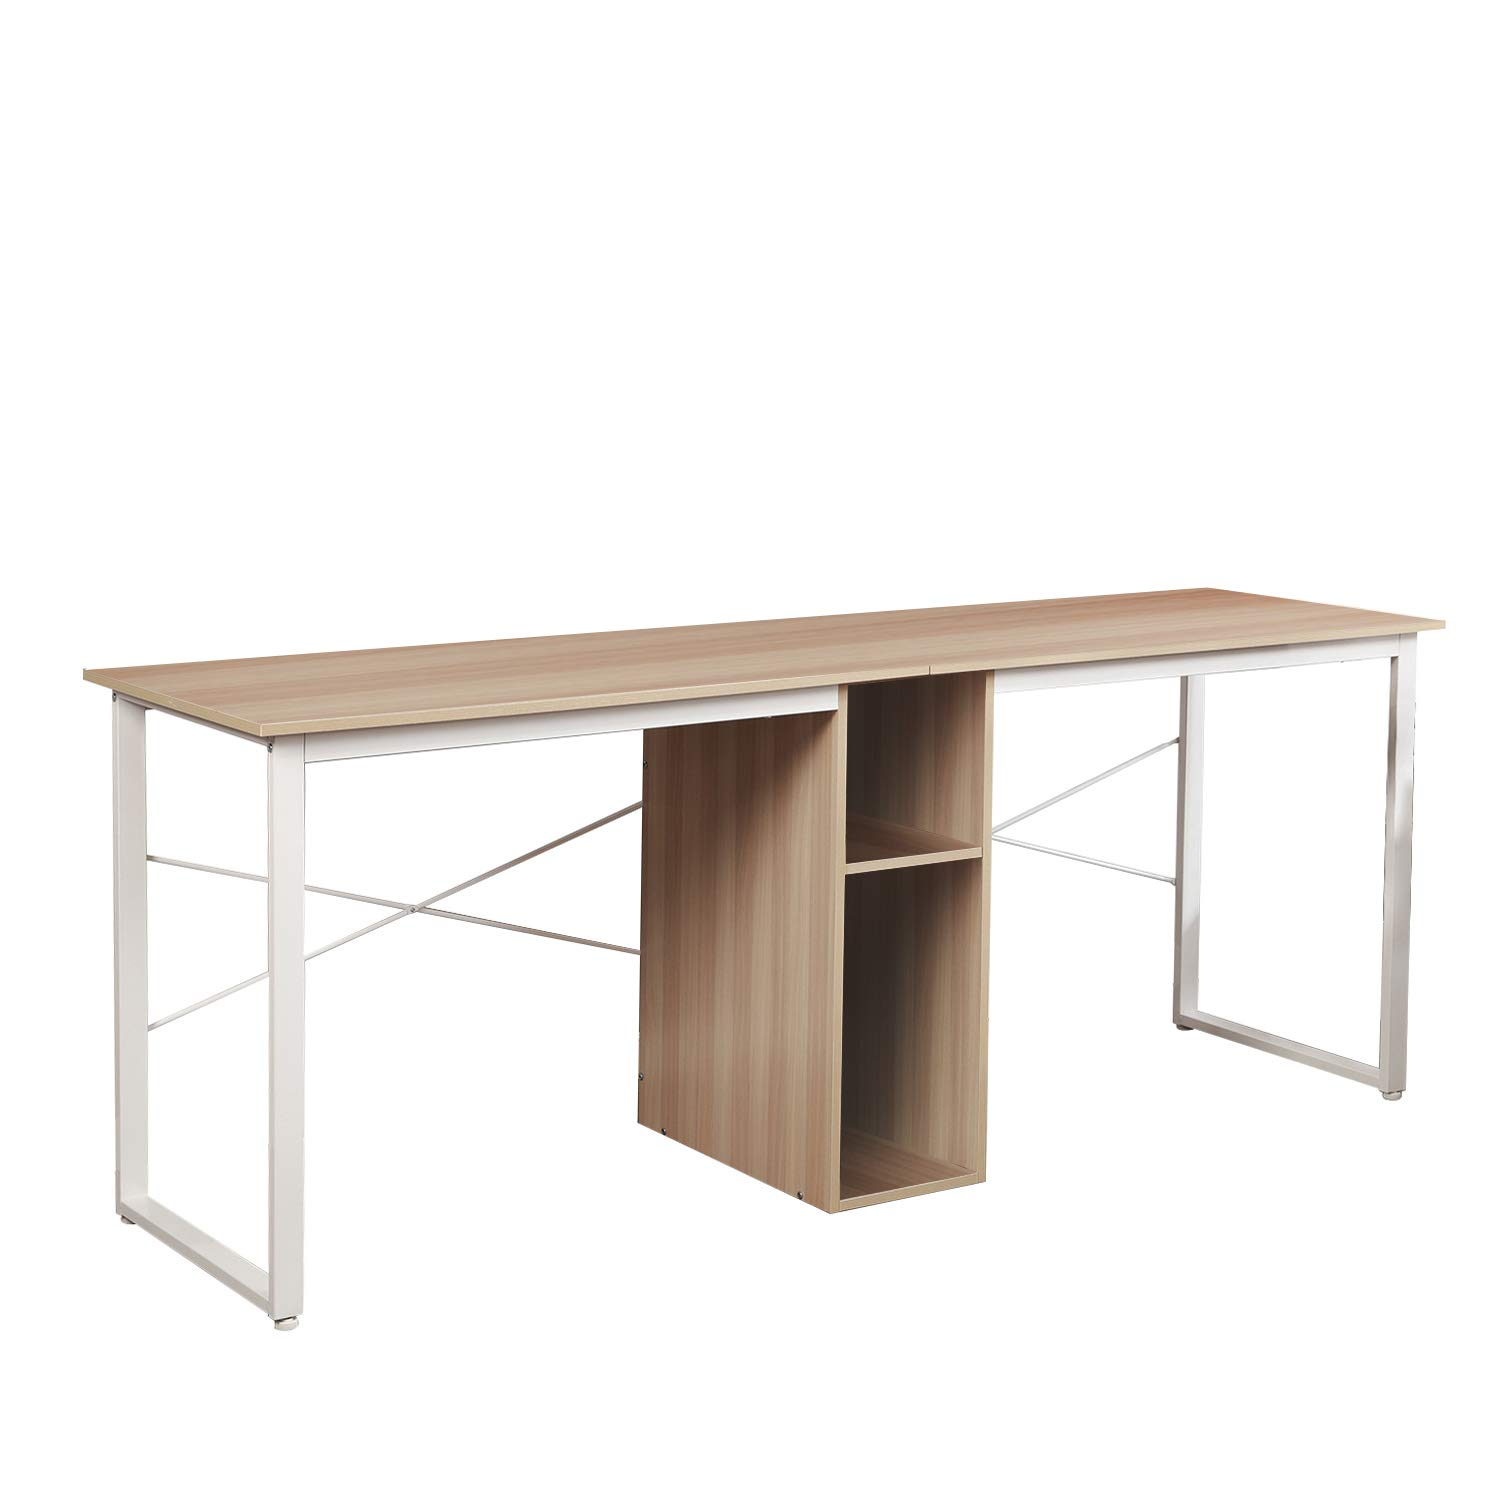 Soges Large Dual Desk 2-Person Workstation Desk 78 inches Double Computer Desk with Storage Box Home Office Desk Writing Desk Teens Desk White Oak LD-H01MO